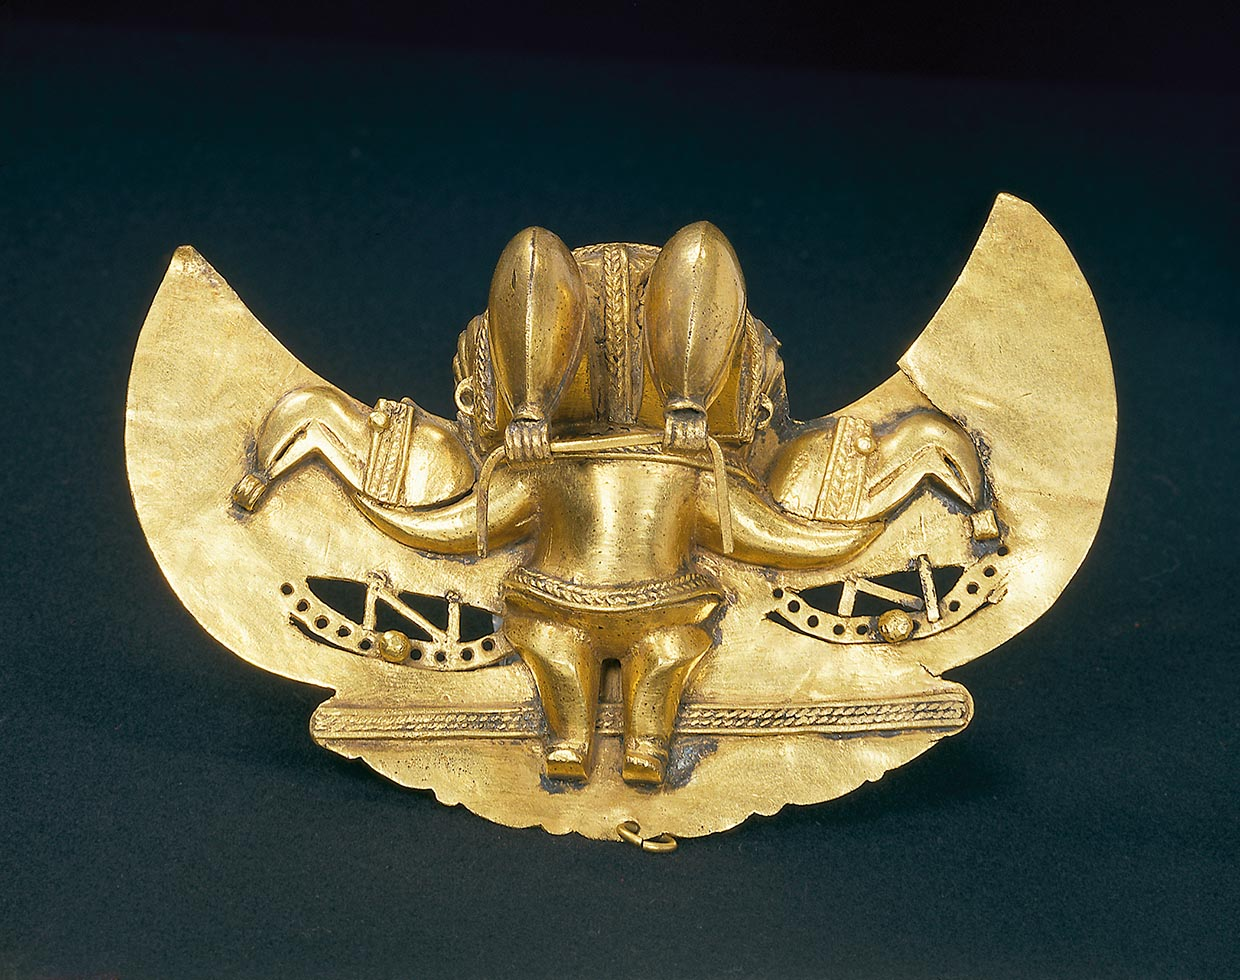 Pendant from the Tairona culture in Colombia, 1300-1500, The National Museum of Denmark. Photo: Kit Weiss